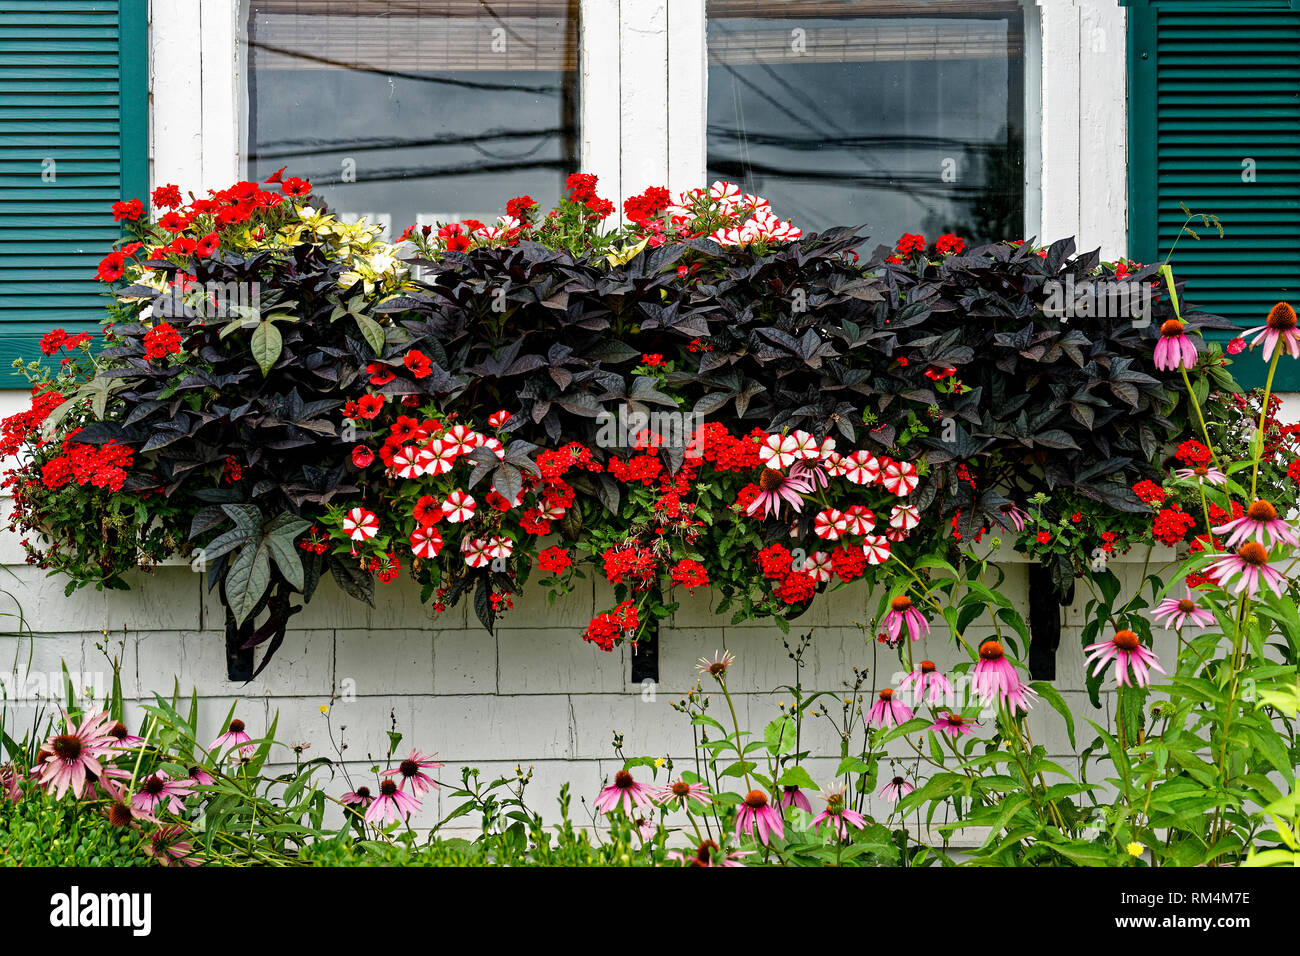 Purple sweet potoato vine along with petunias and verbena growing in a olorful window box. - Stock Image